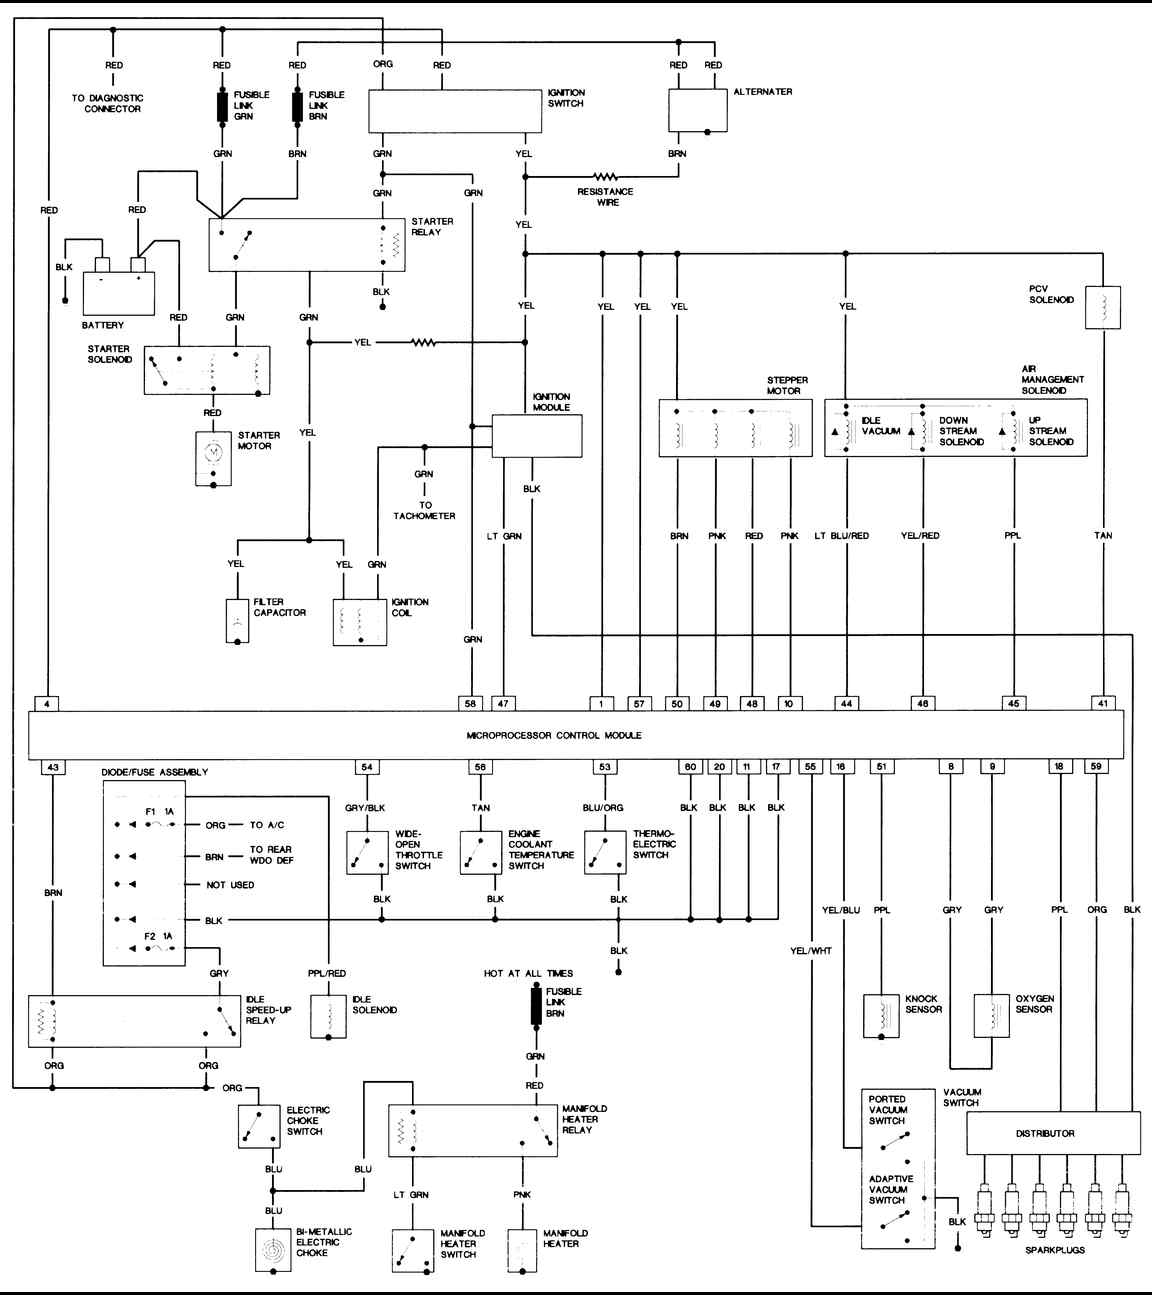 1988 jeep wrangler 4 2l engine freeautomechanic isuzu hombre wiring diagram  1988 jeep wrangler 4 2